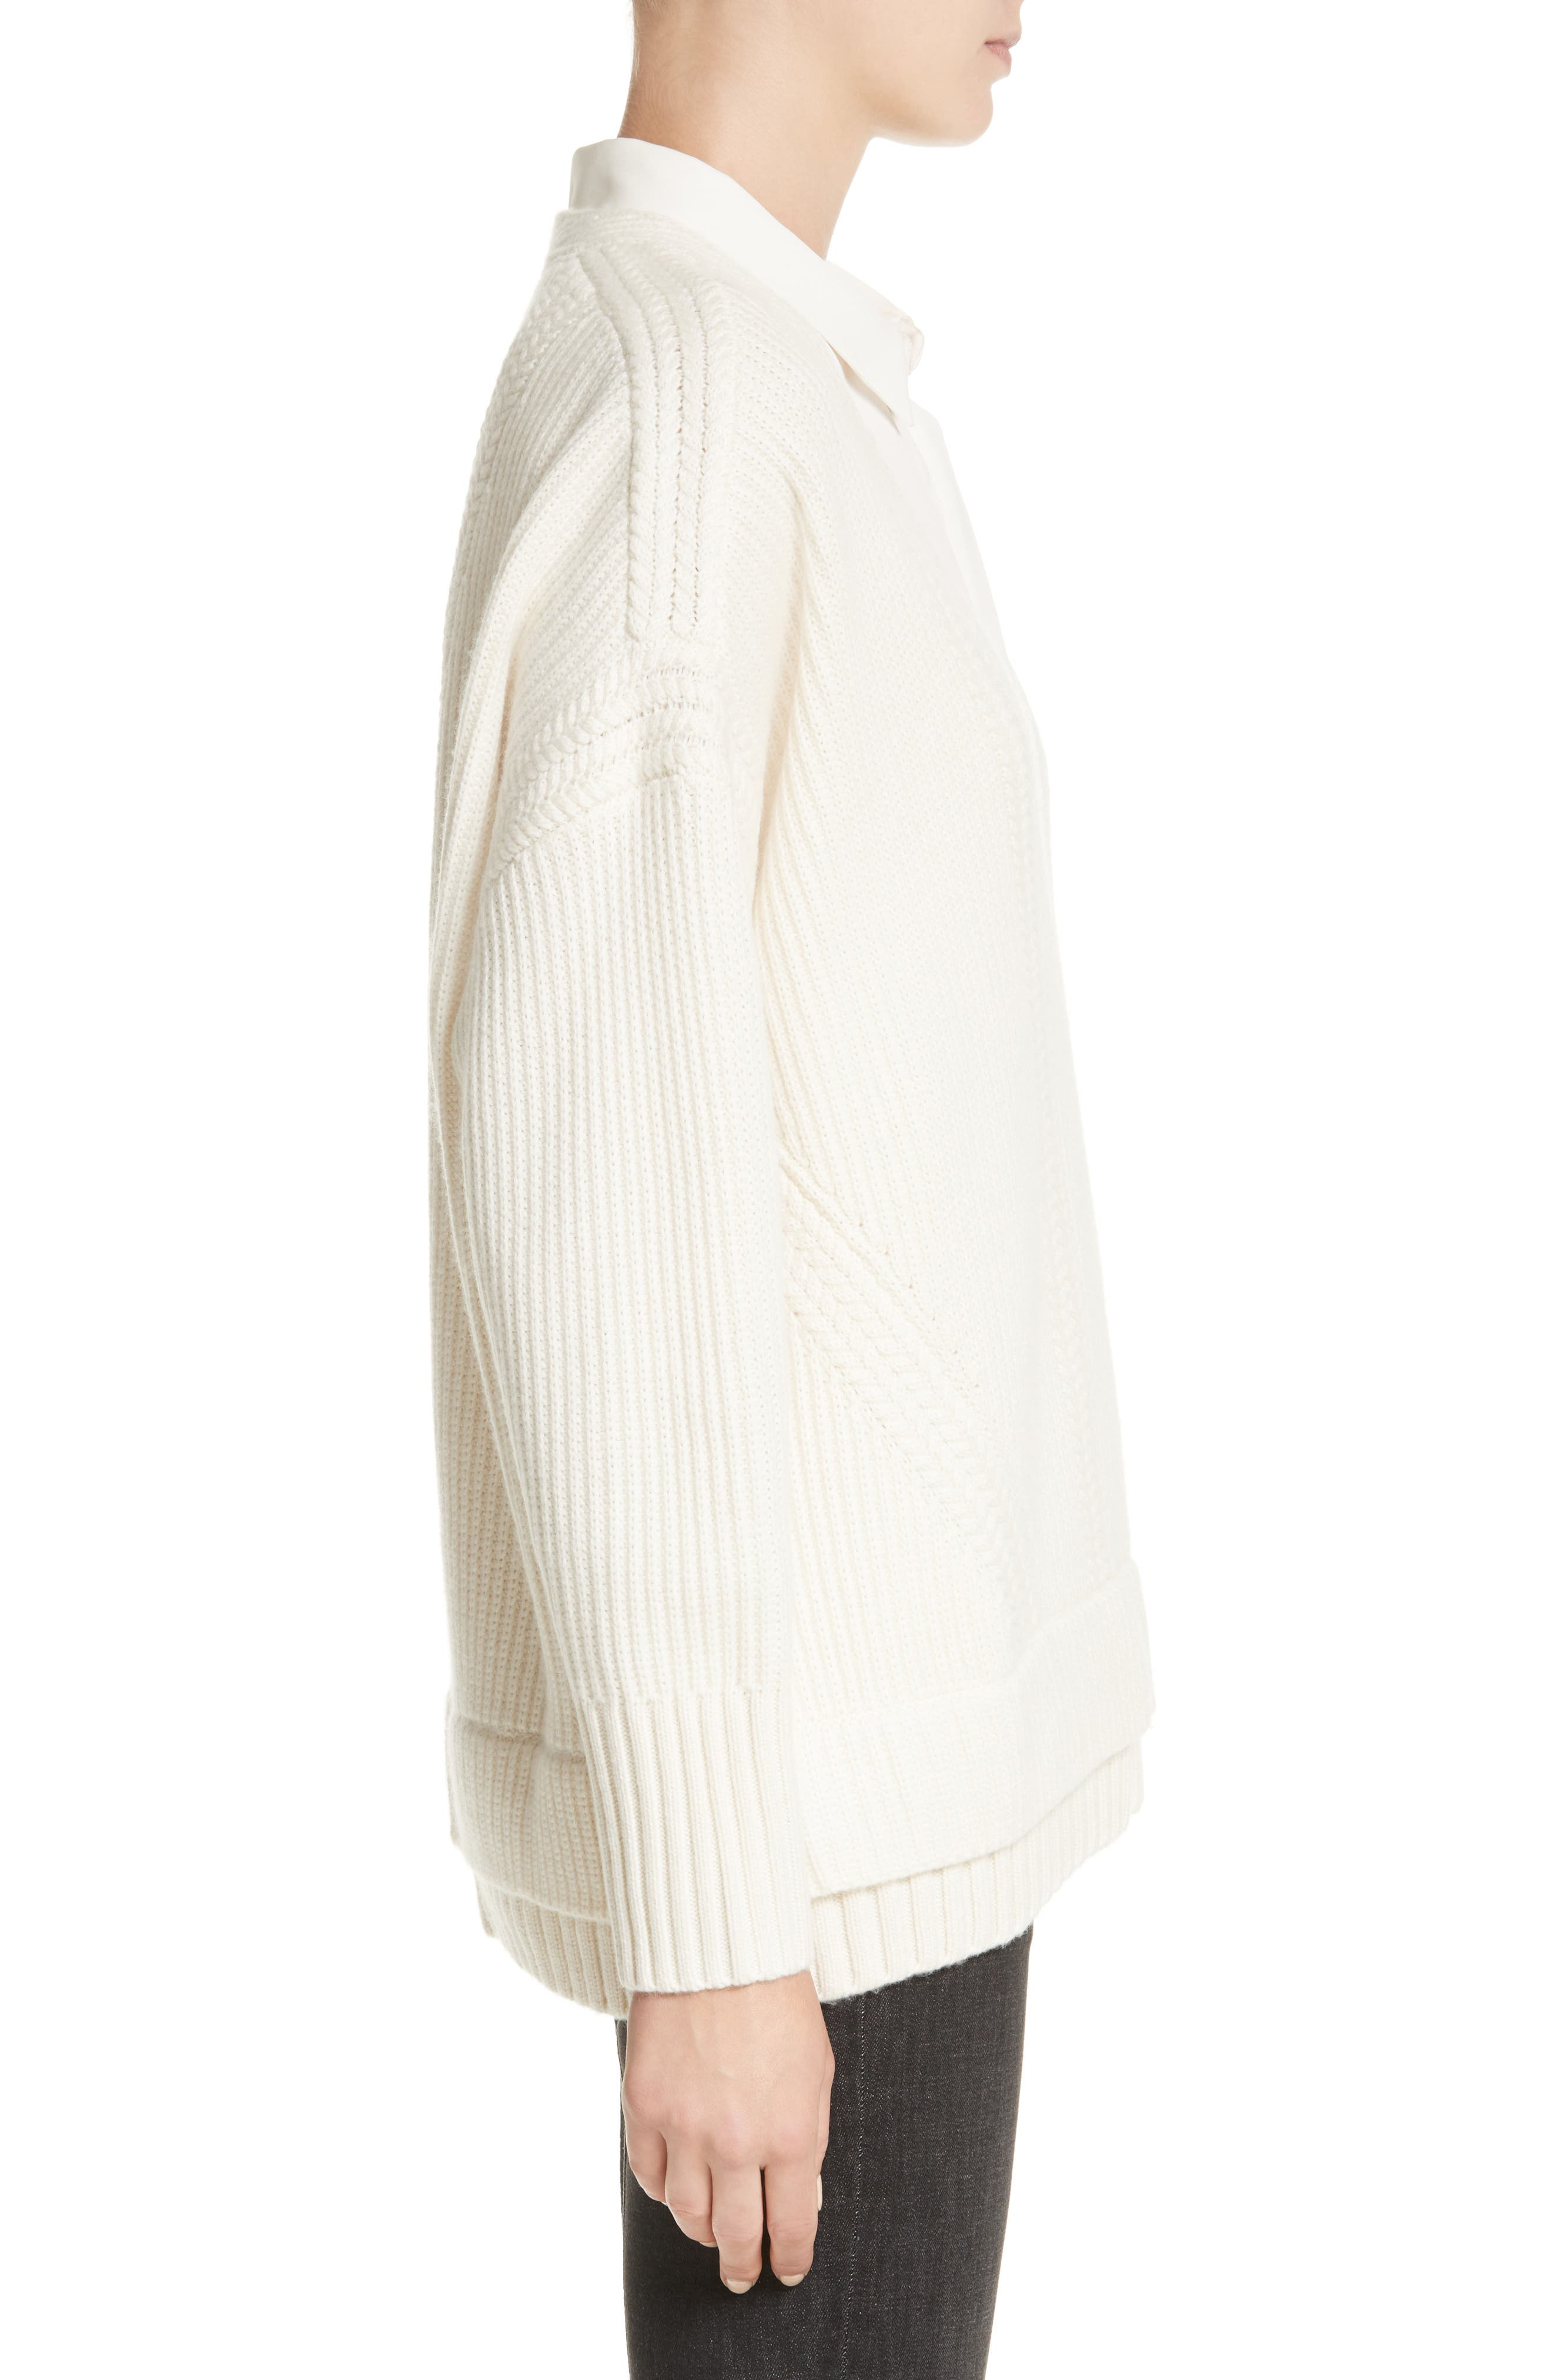 Santerno Wool & Cashmere Cable Knit Sweater,                             Alternate thumbnail 3, color,                             Natural White